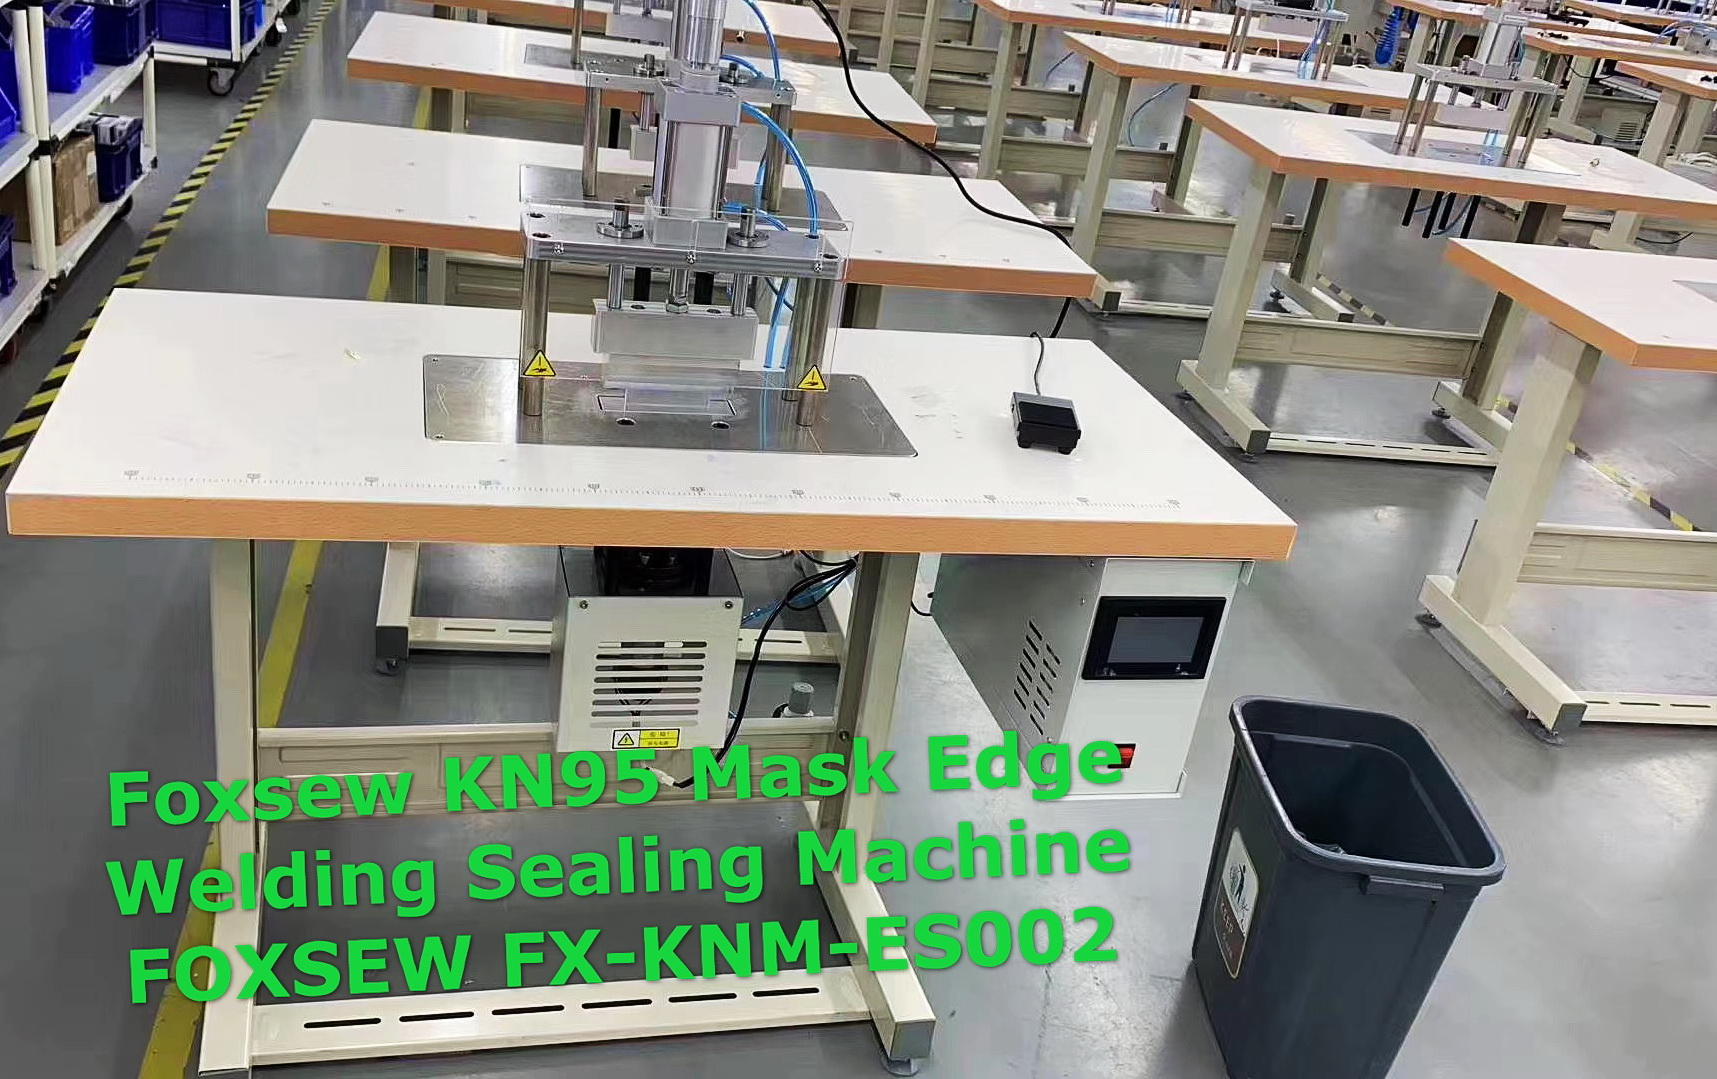 Ultrasonic KN95 Mask Edge Welding Sealing Machine FOXSEW FX-KNM-ES002 (3)